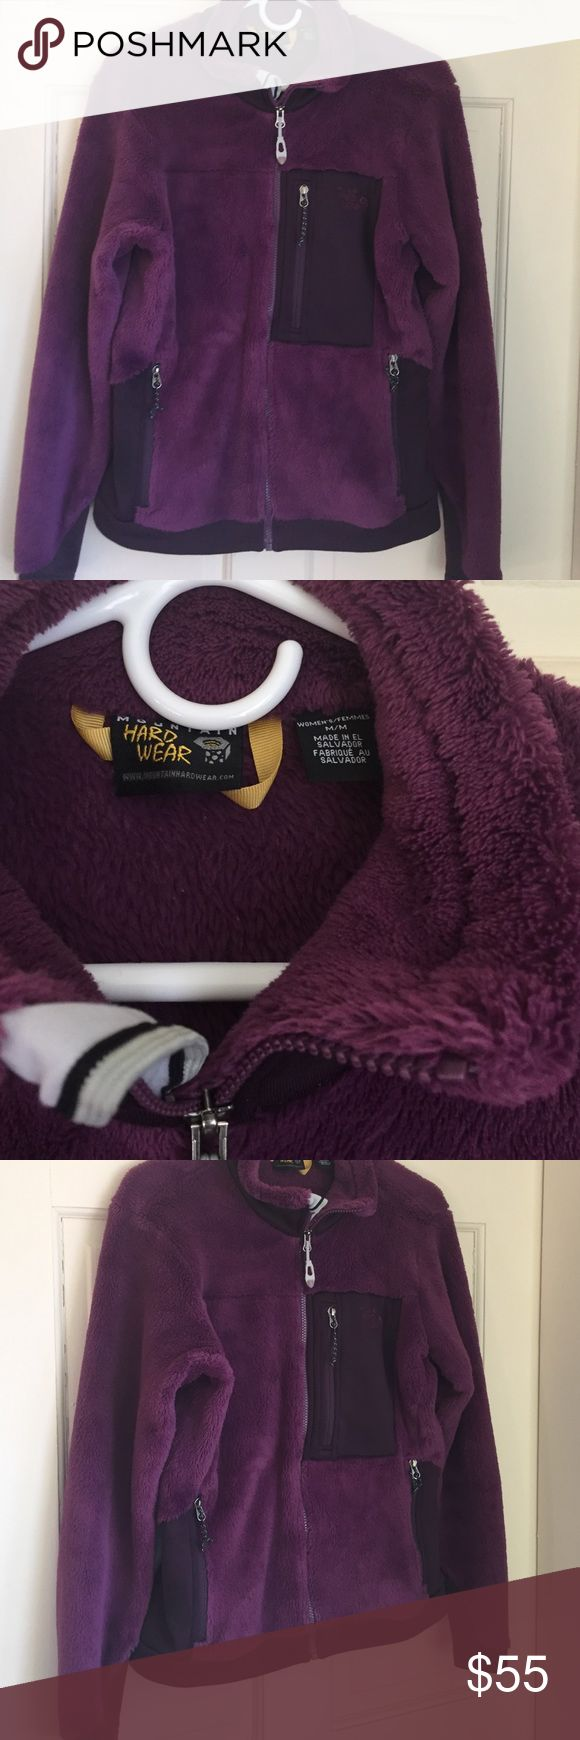 Mountain Hardware Women's Fleece jacket This gorgeous deep purple fleece zip up is so soft and cozy you'll want to cuddle up and fall asleep in it.                                                                Women's Medium.  Worn less than a half dozen times! Mountain Hard Wear Jackets & Coats